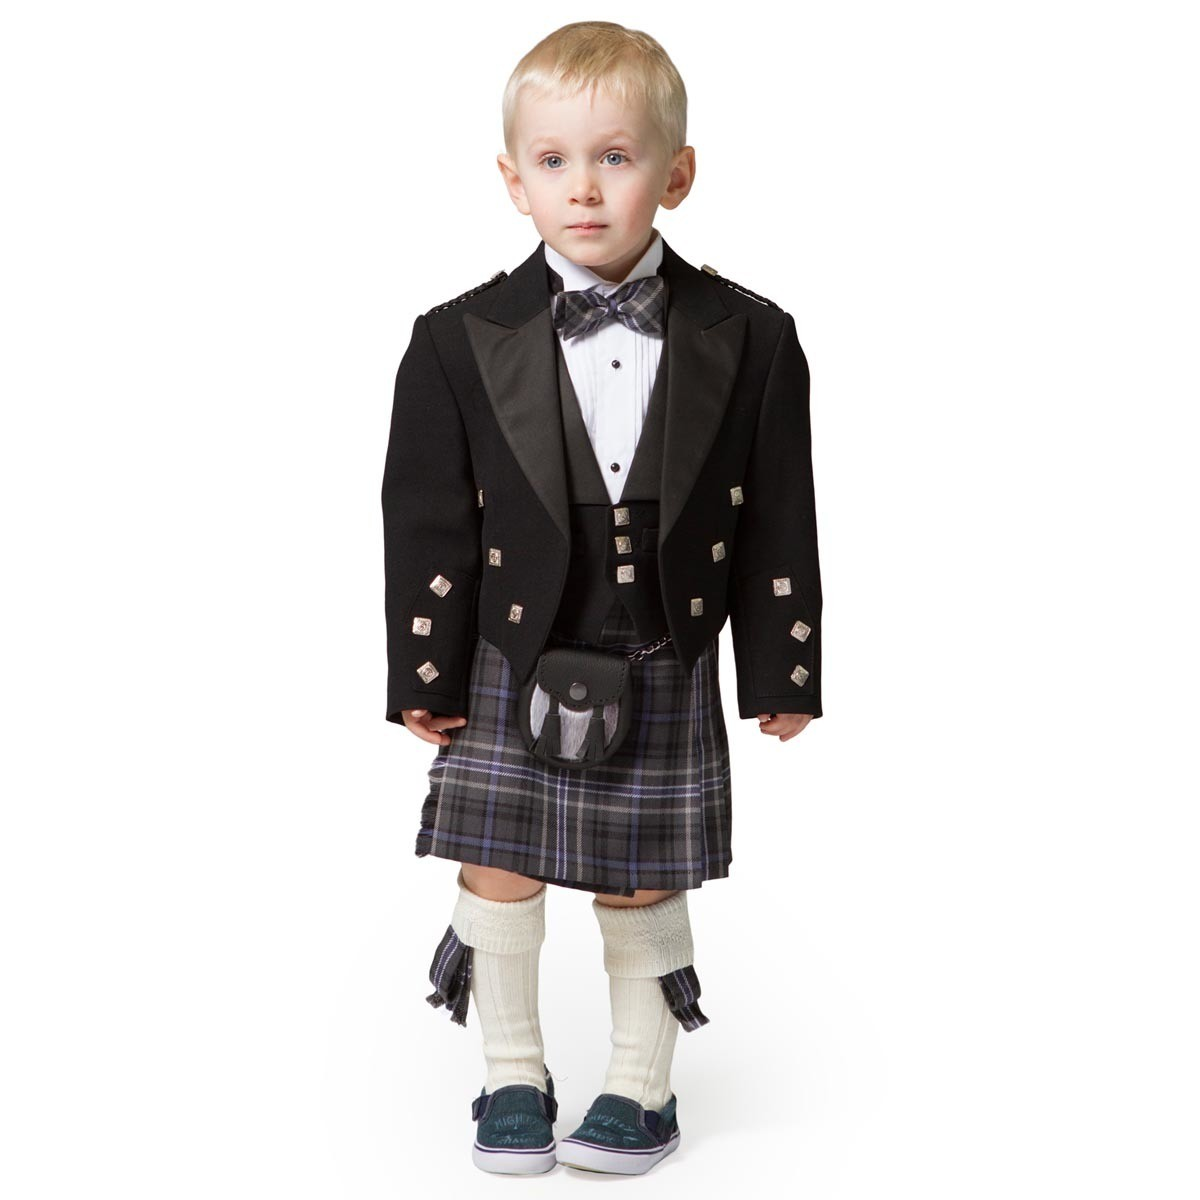 How To Make A Kilt For A Child